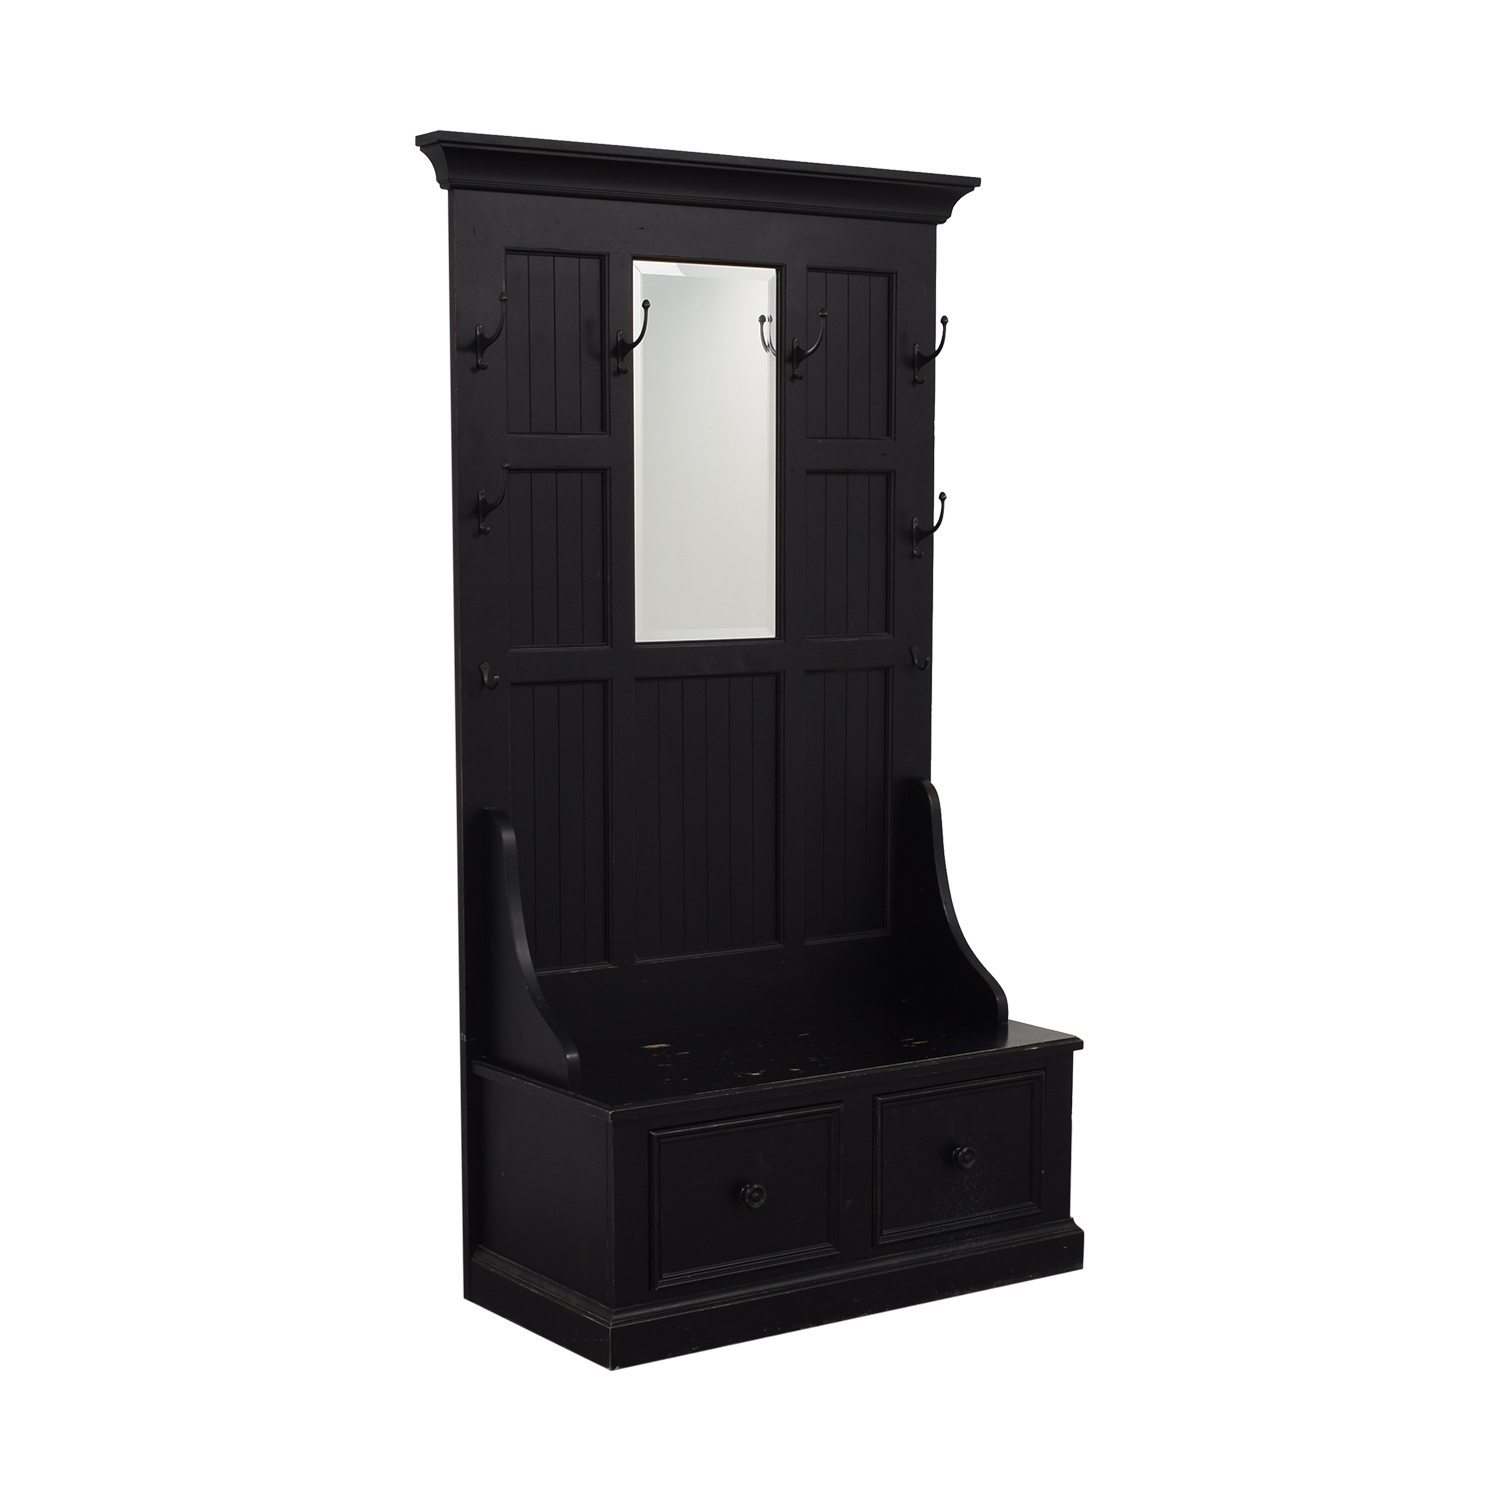 Ethan Allen Ethan Allen Charcoal Logan Hall for sale